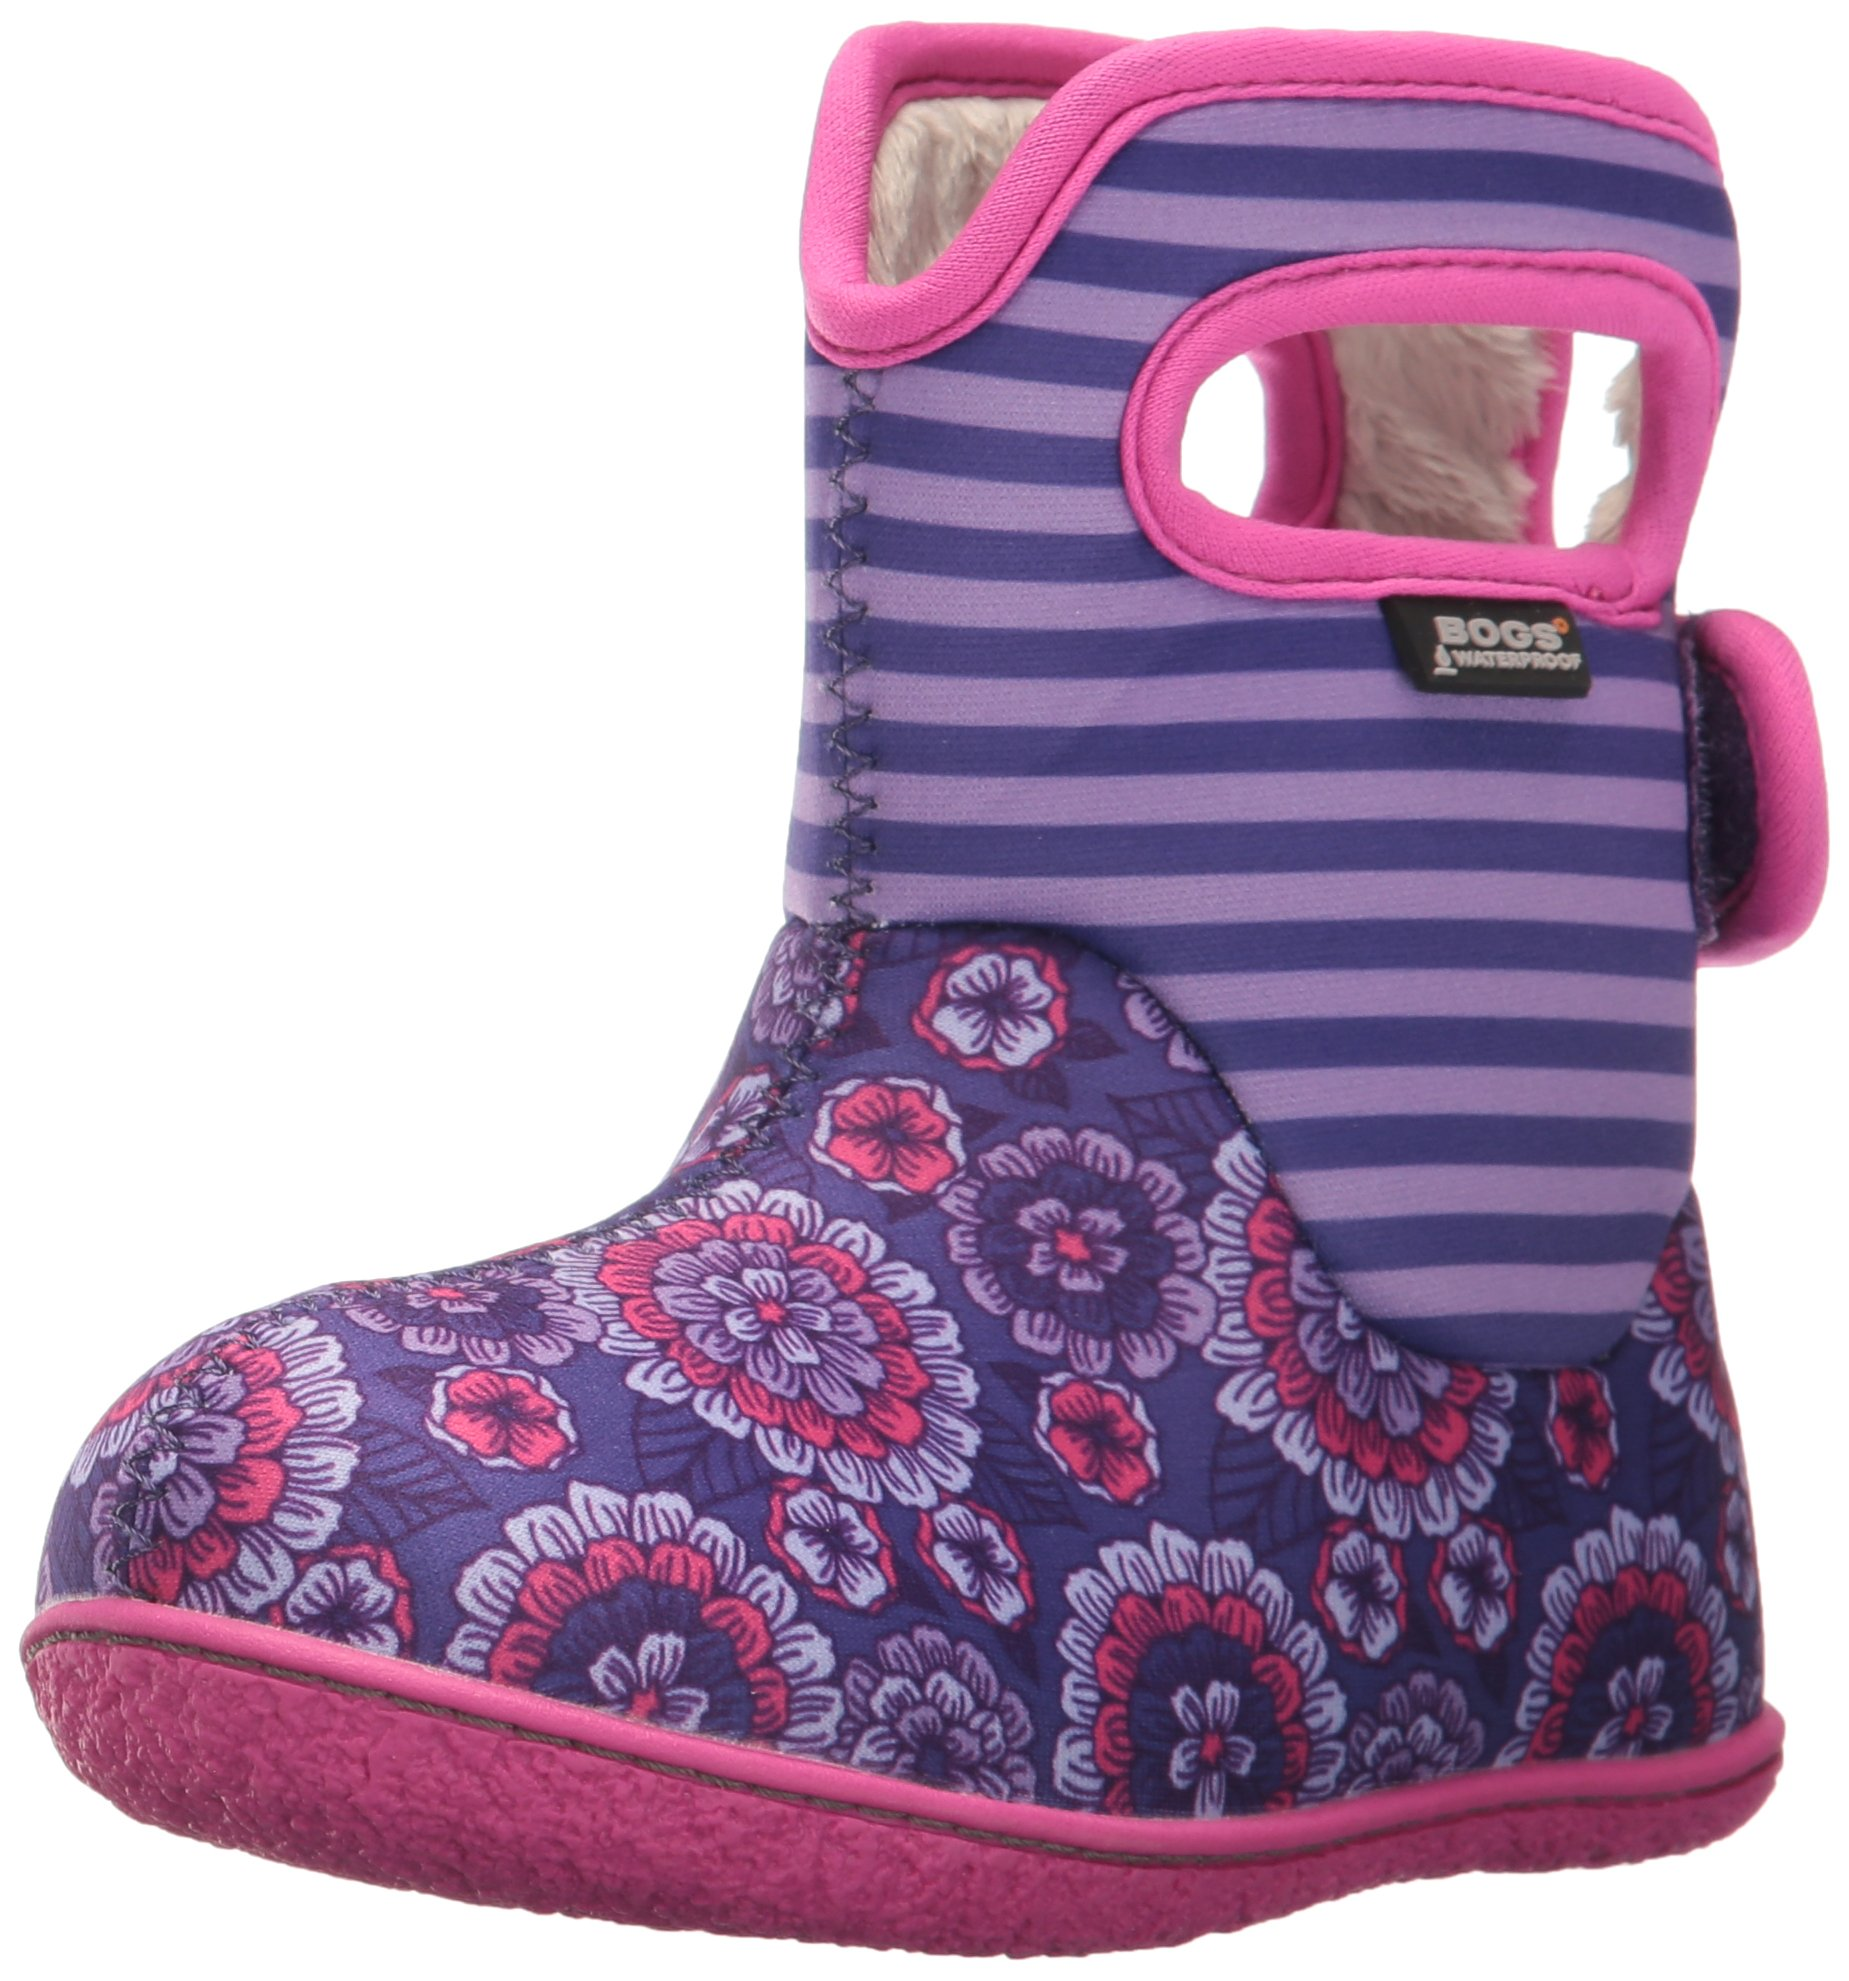 Bogs Baby Waterproof Insulated Toddler/Kids Rain Boots for Boys and Girls, Pansy Stripe Print/Violet/Multi, 4 M US Toddler